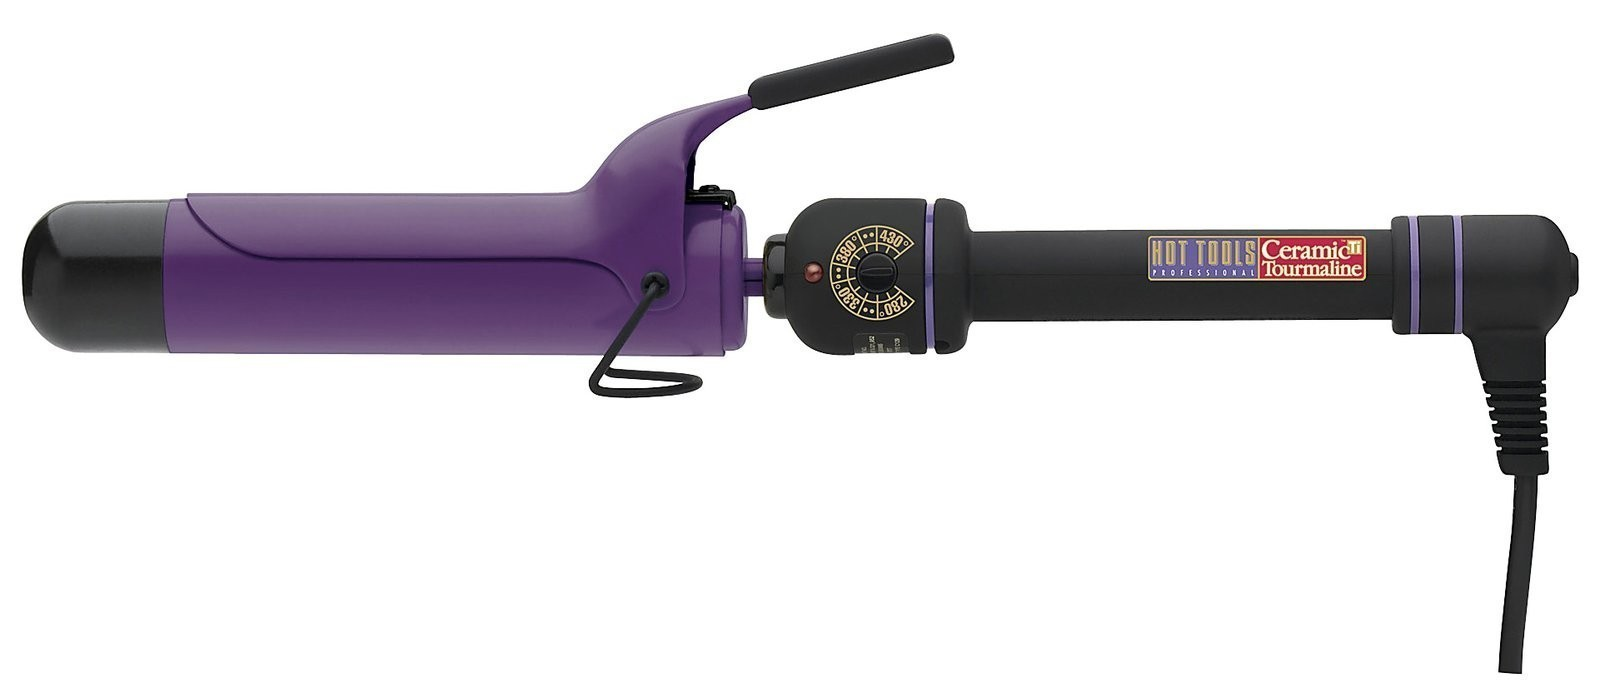 Hot Tools 1-1/2″ Curling Iron